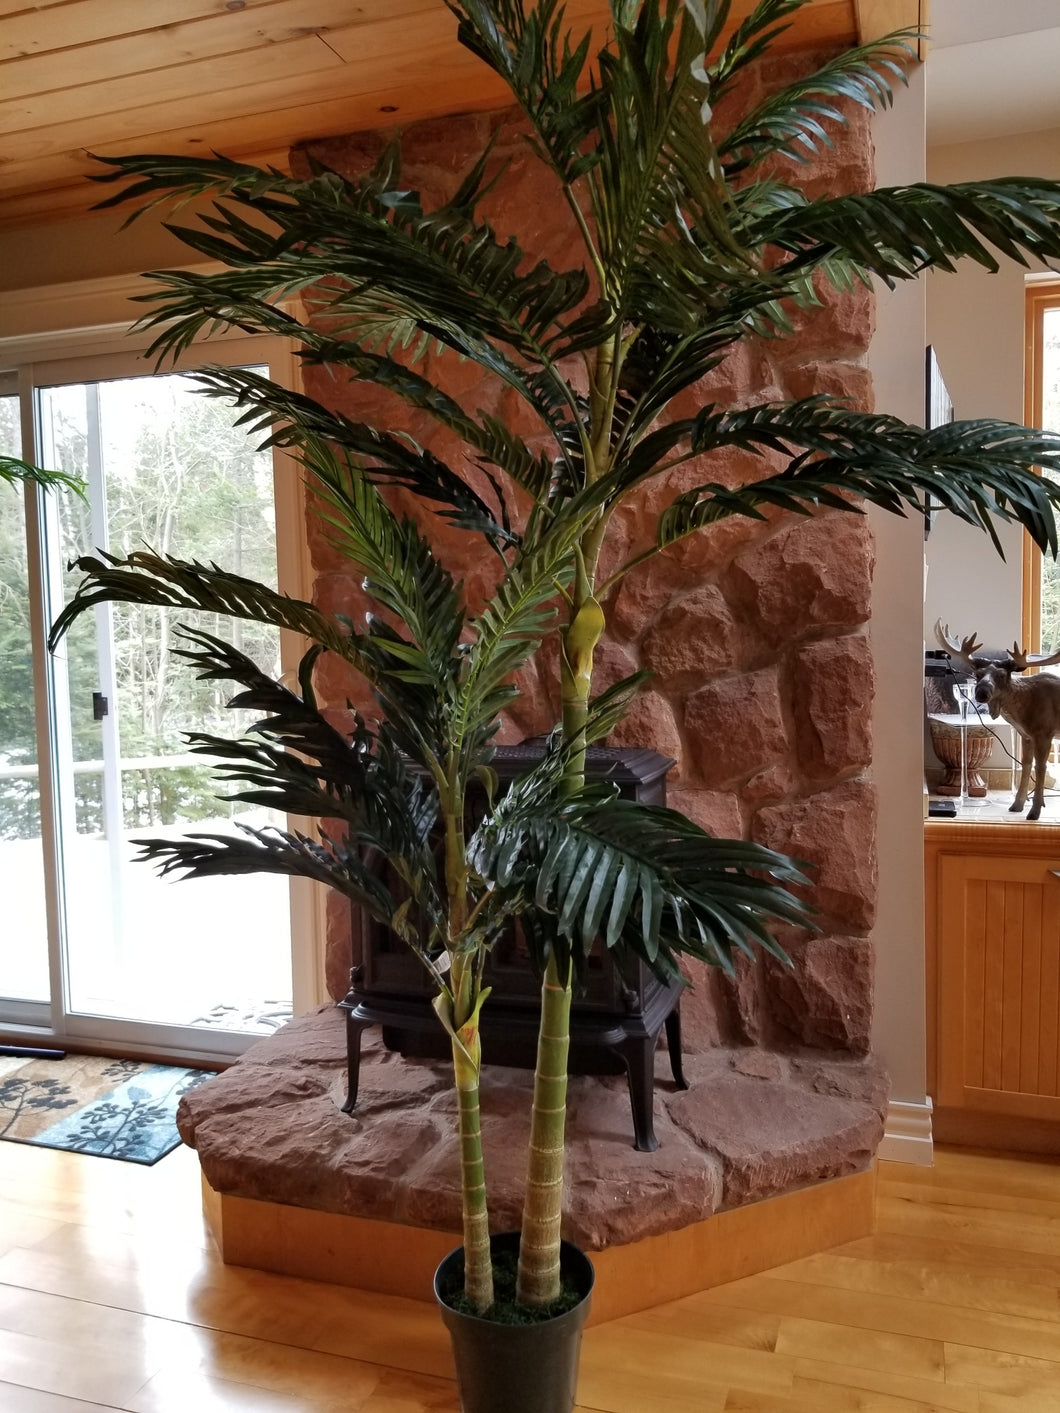 8 foot golden cane palm artificial tree for sale